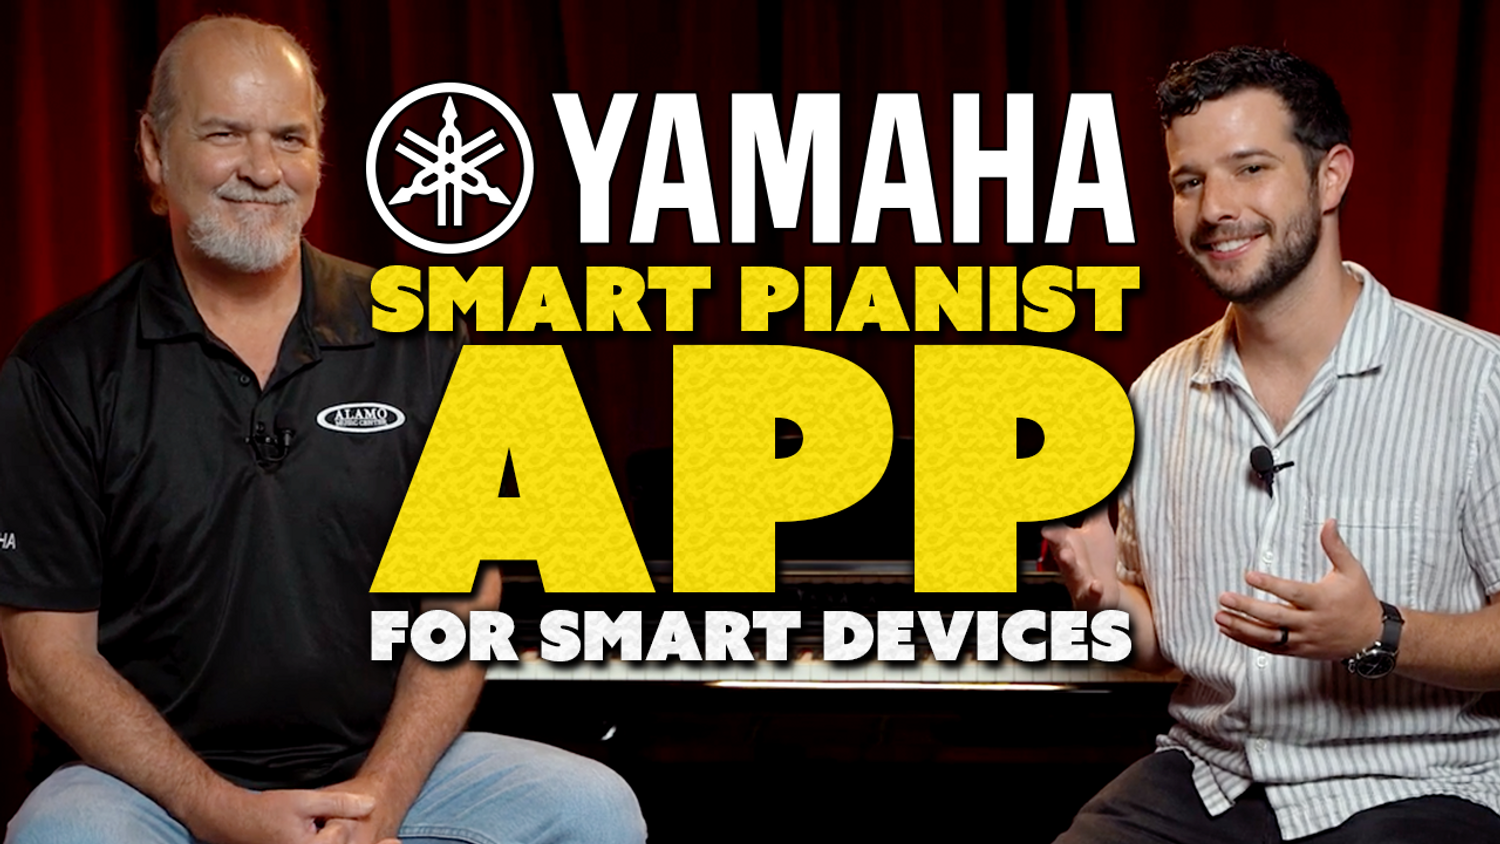 Yamaha Smart Pianist App - Control Your Piano With A Smart Device